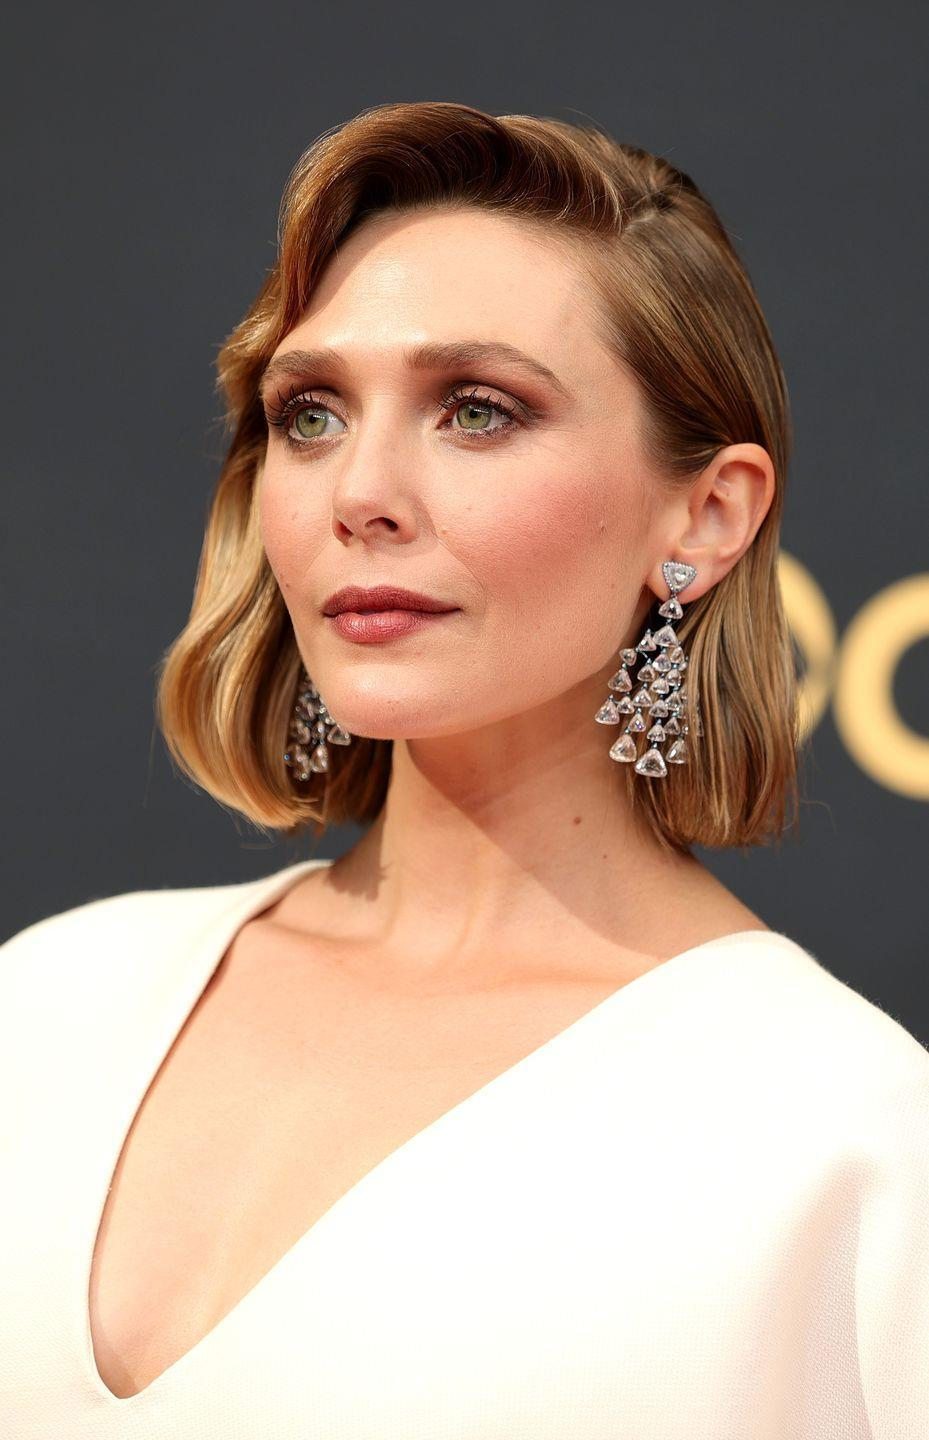 <p>A masterclass in modern Hollywood glamour, Elizabeth Olsen's hair by Adir Abergel was freshly cut into a bob and styled in crisp vintage waves. Her make-up, by artist Pati Dubroff, centred on muted neutrals, bringing an element of minimal Nineties style to the look. </p>